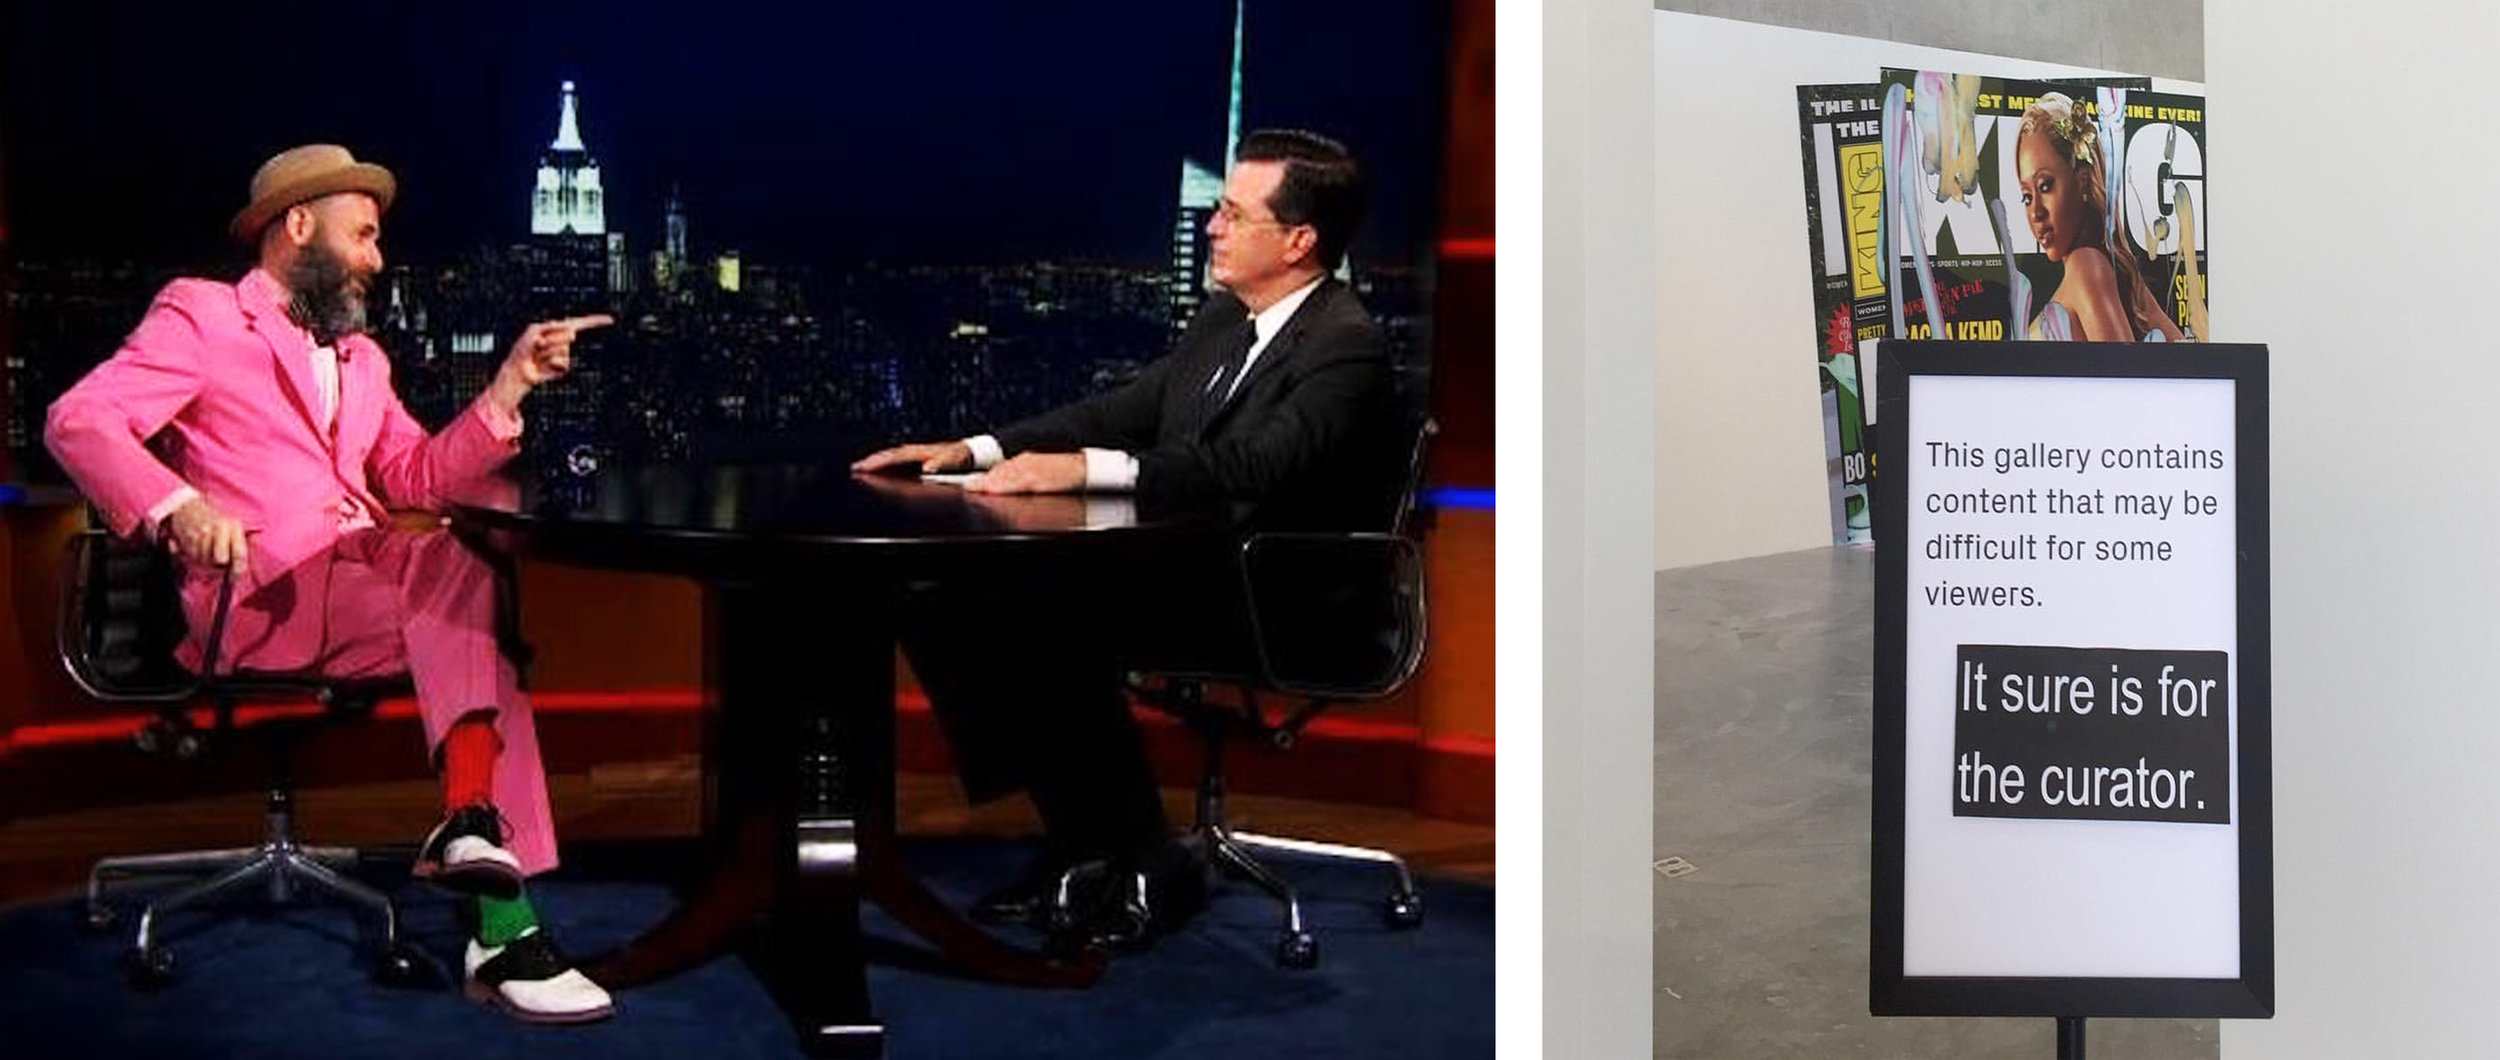 """Kenneth Goldsmith on """"The Colbert Report"""" and an altered exhibition sign at the St. Louis Contemporary Art Museum's Kelley Walker exhibition (photo by Richard Reilly)"""